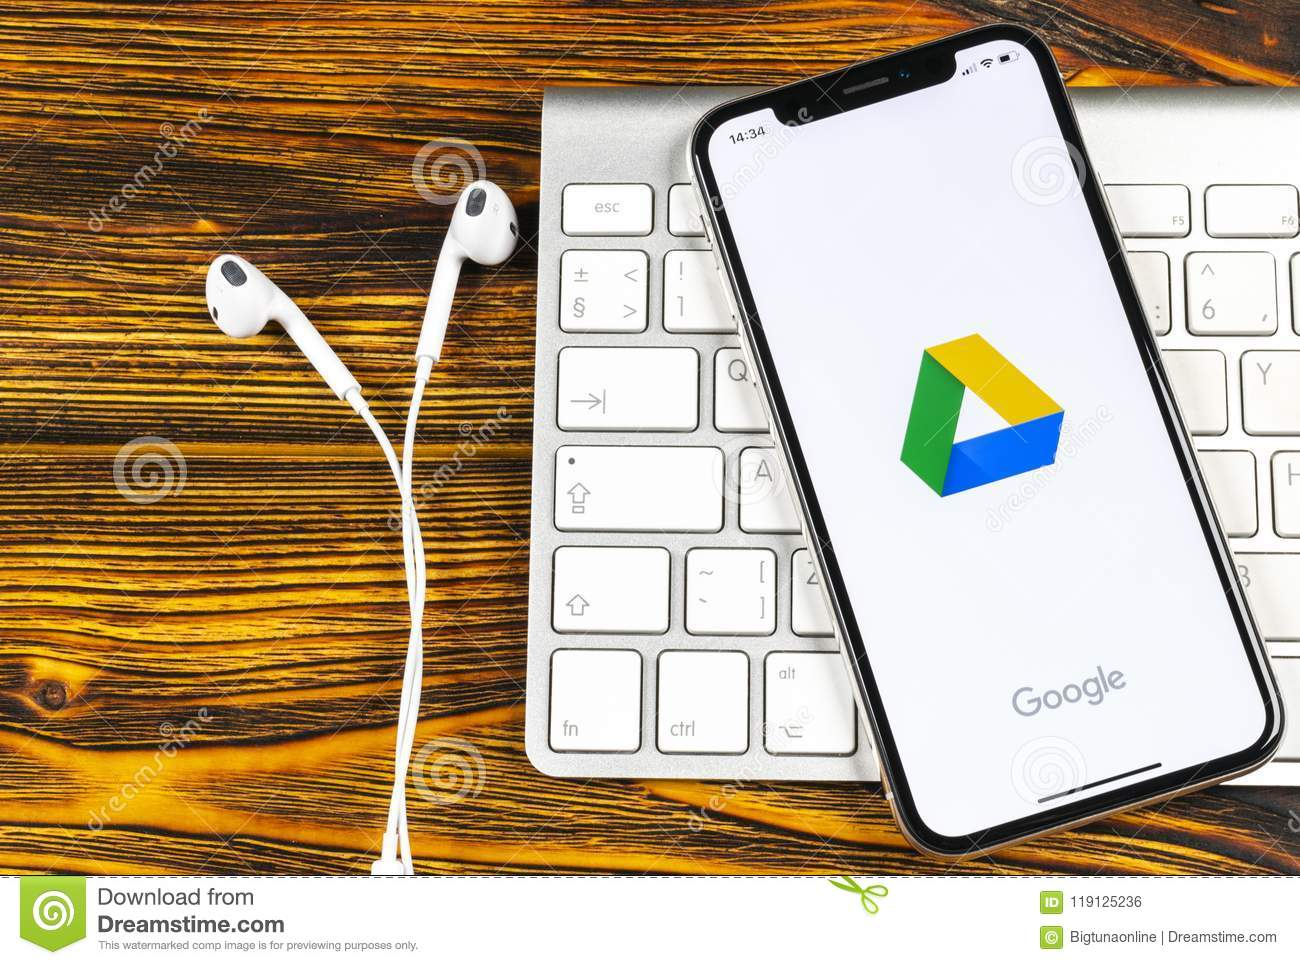 how to download image from google drive on iphone